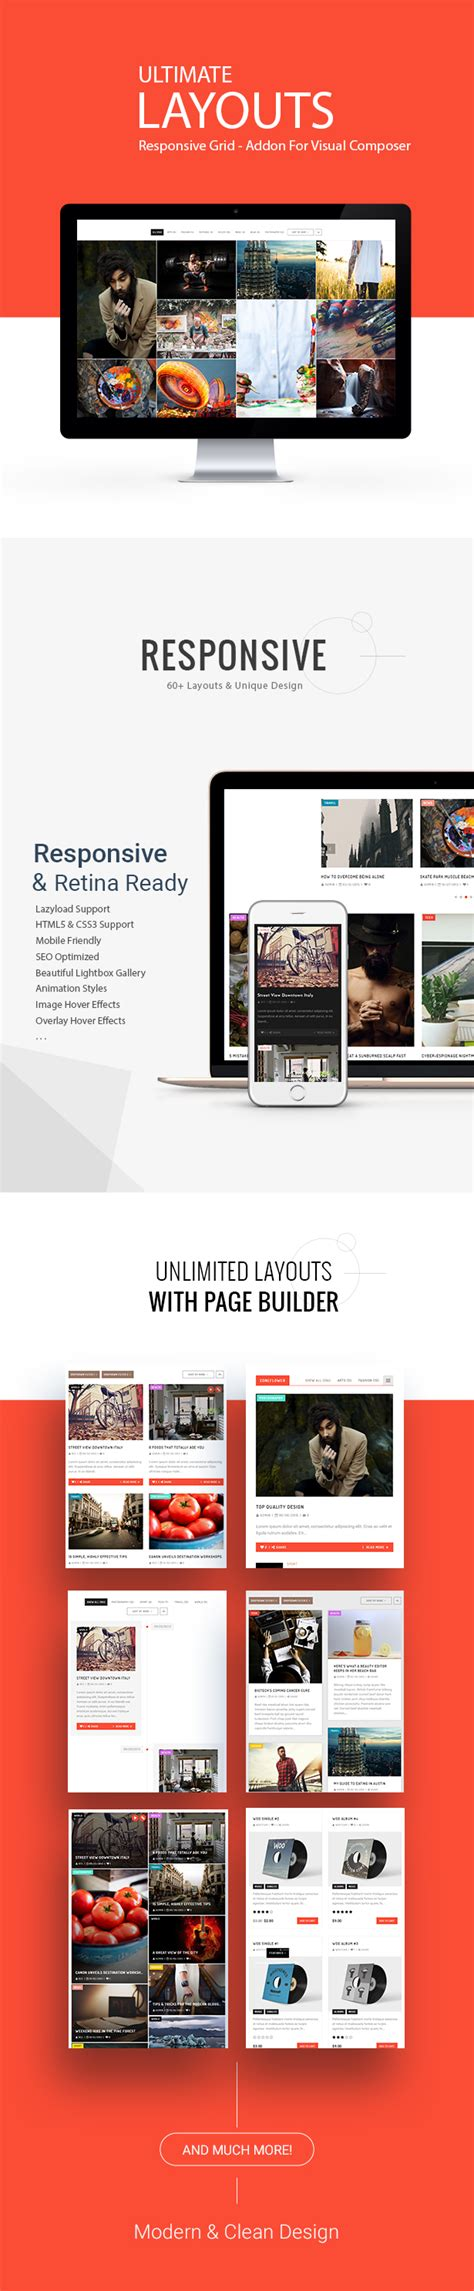 grid layout visual composer ultimate layouts responsive grid addon for visual